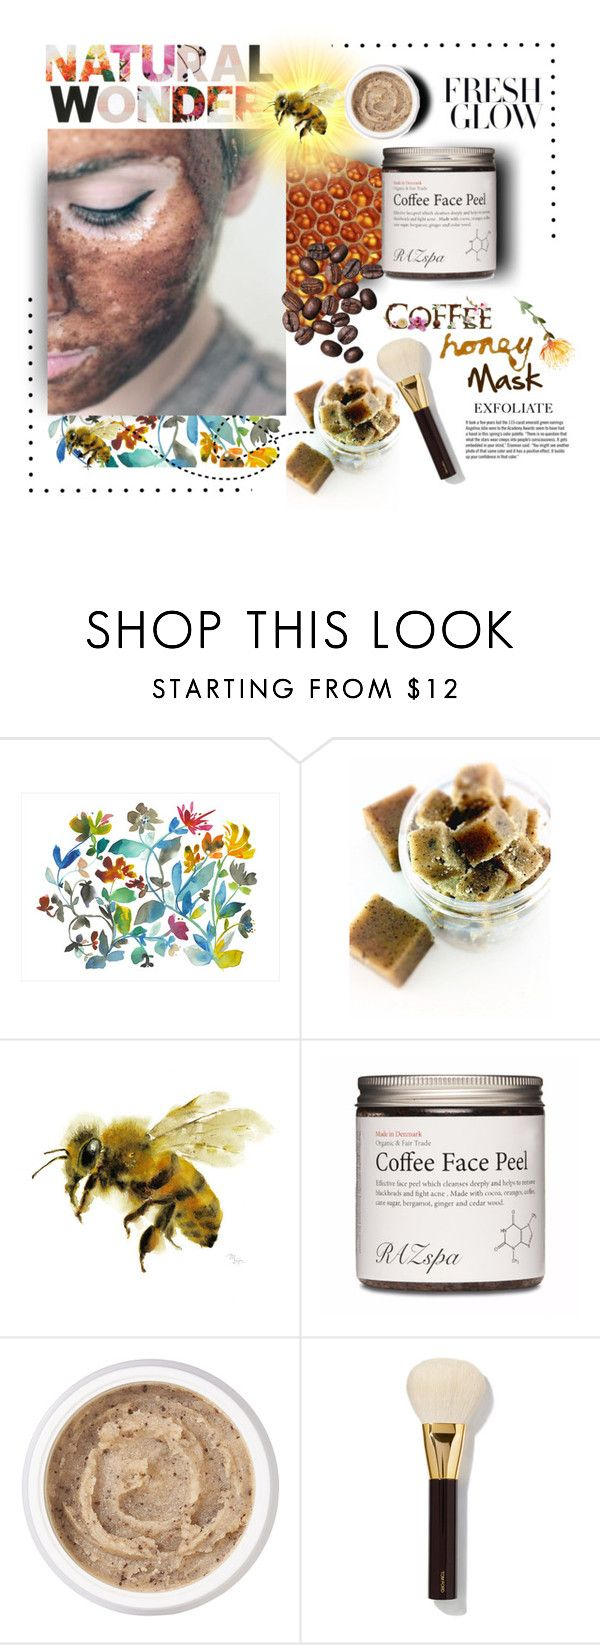 """Coffee/Honey Mask"" by mkanzee ❤ liked on Polyvore featuring beauty, Dot & Bo, Aromatherapy Associates, Tom Ford, Garance Doré, naturalbeauty, organic and facemasks"